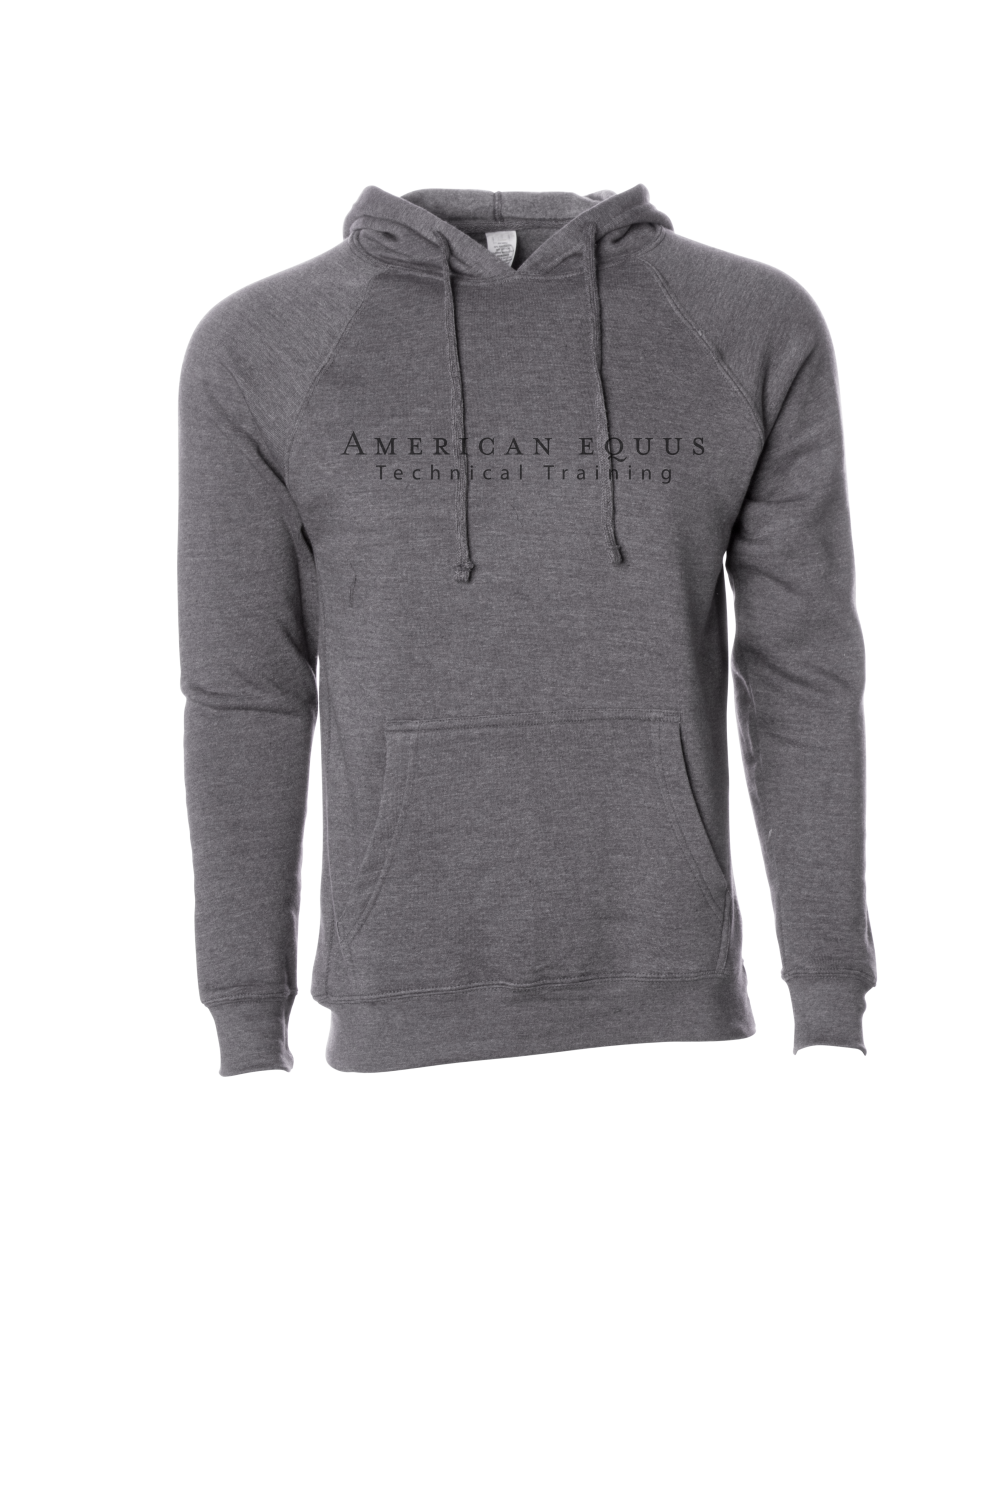 American Equus Technical Training KICKBACK Hoodie